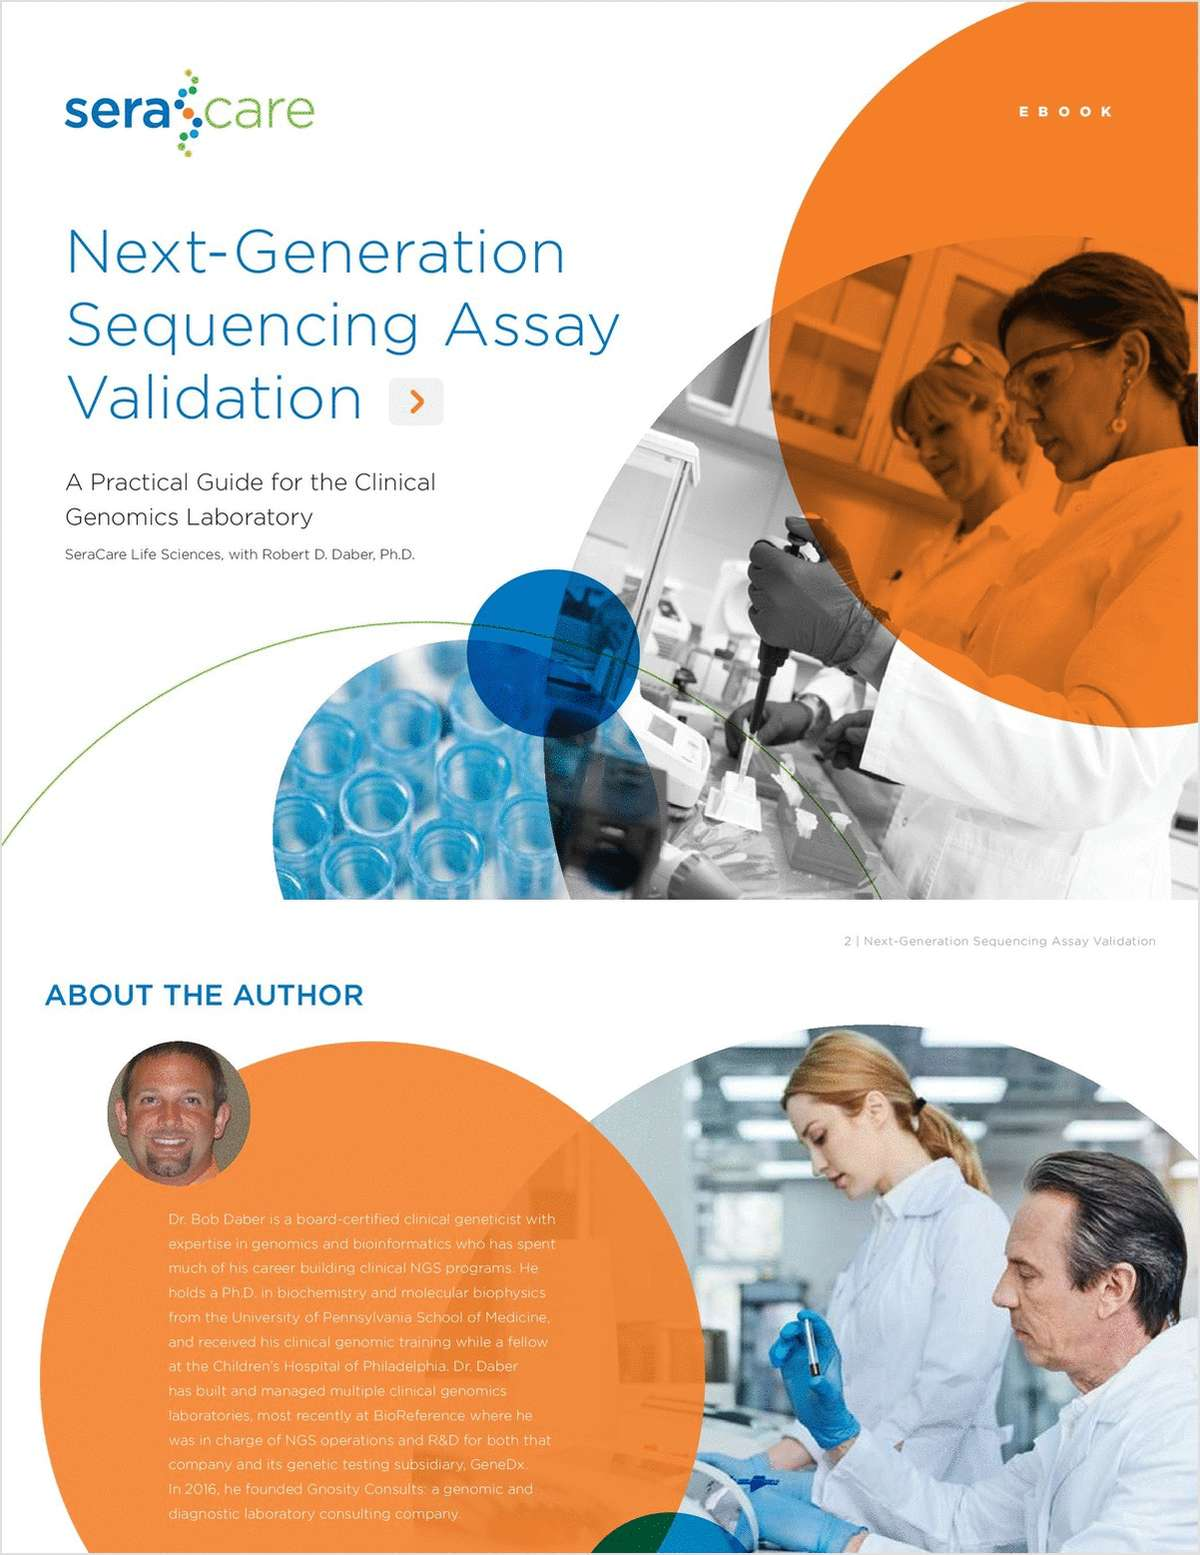 Next-Generation Sequencing Assay Validation: A Practical Guide for the Clinical Genomics Laboratory